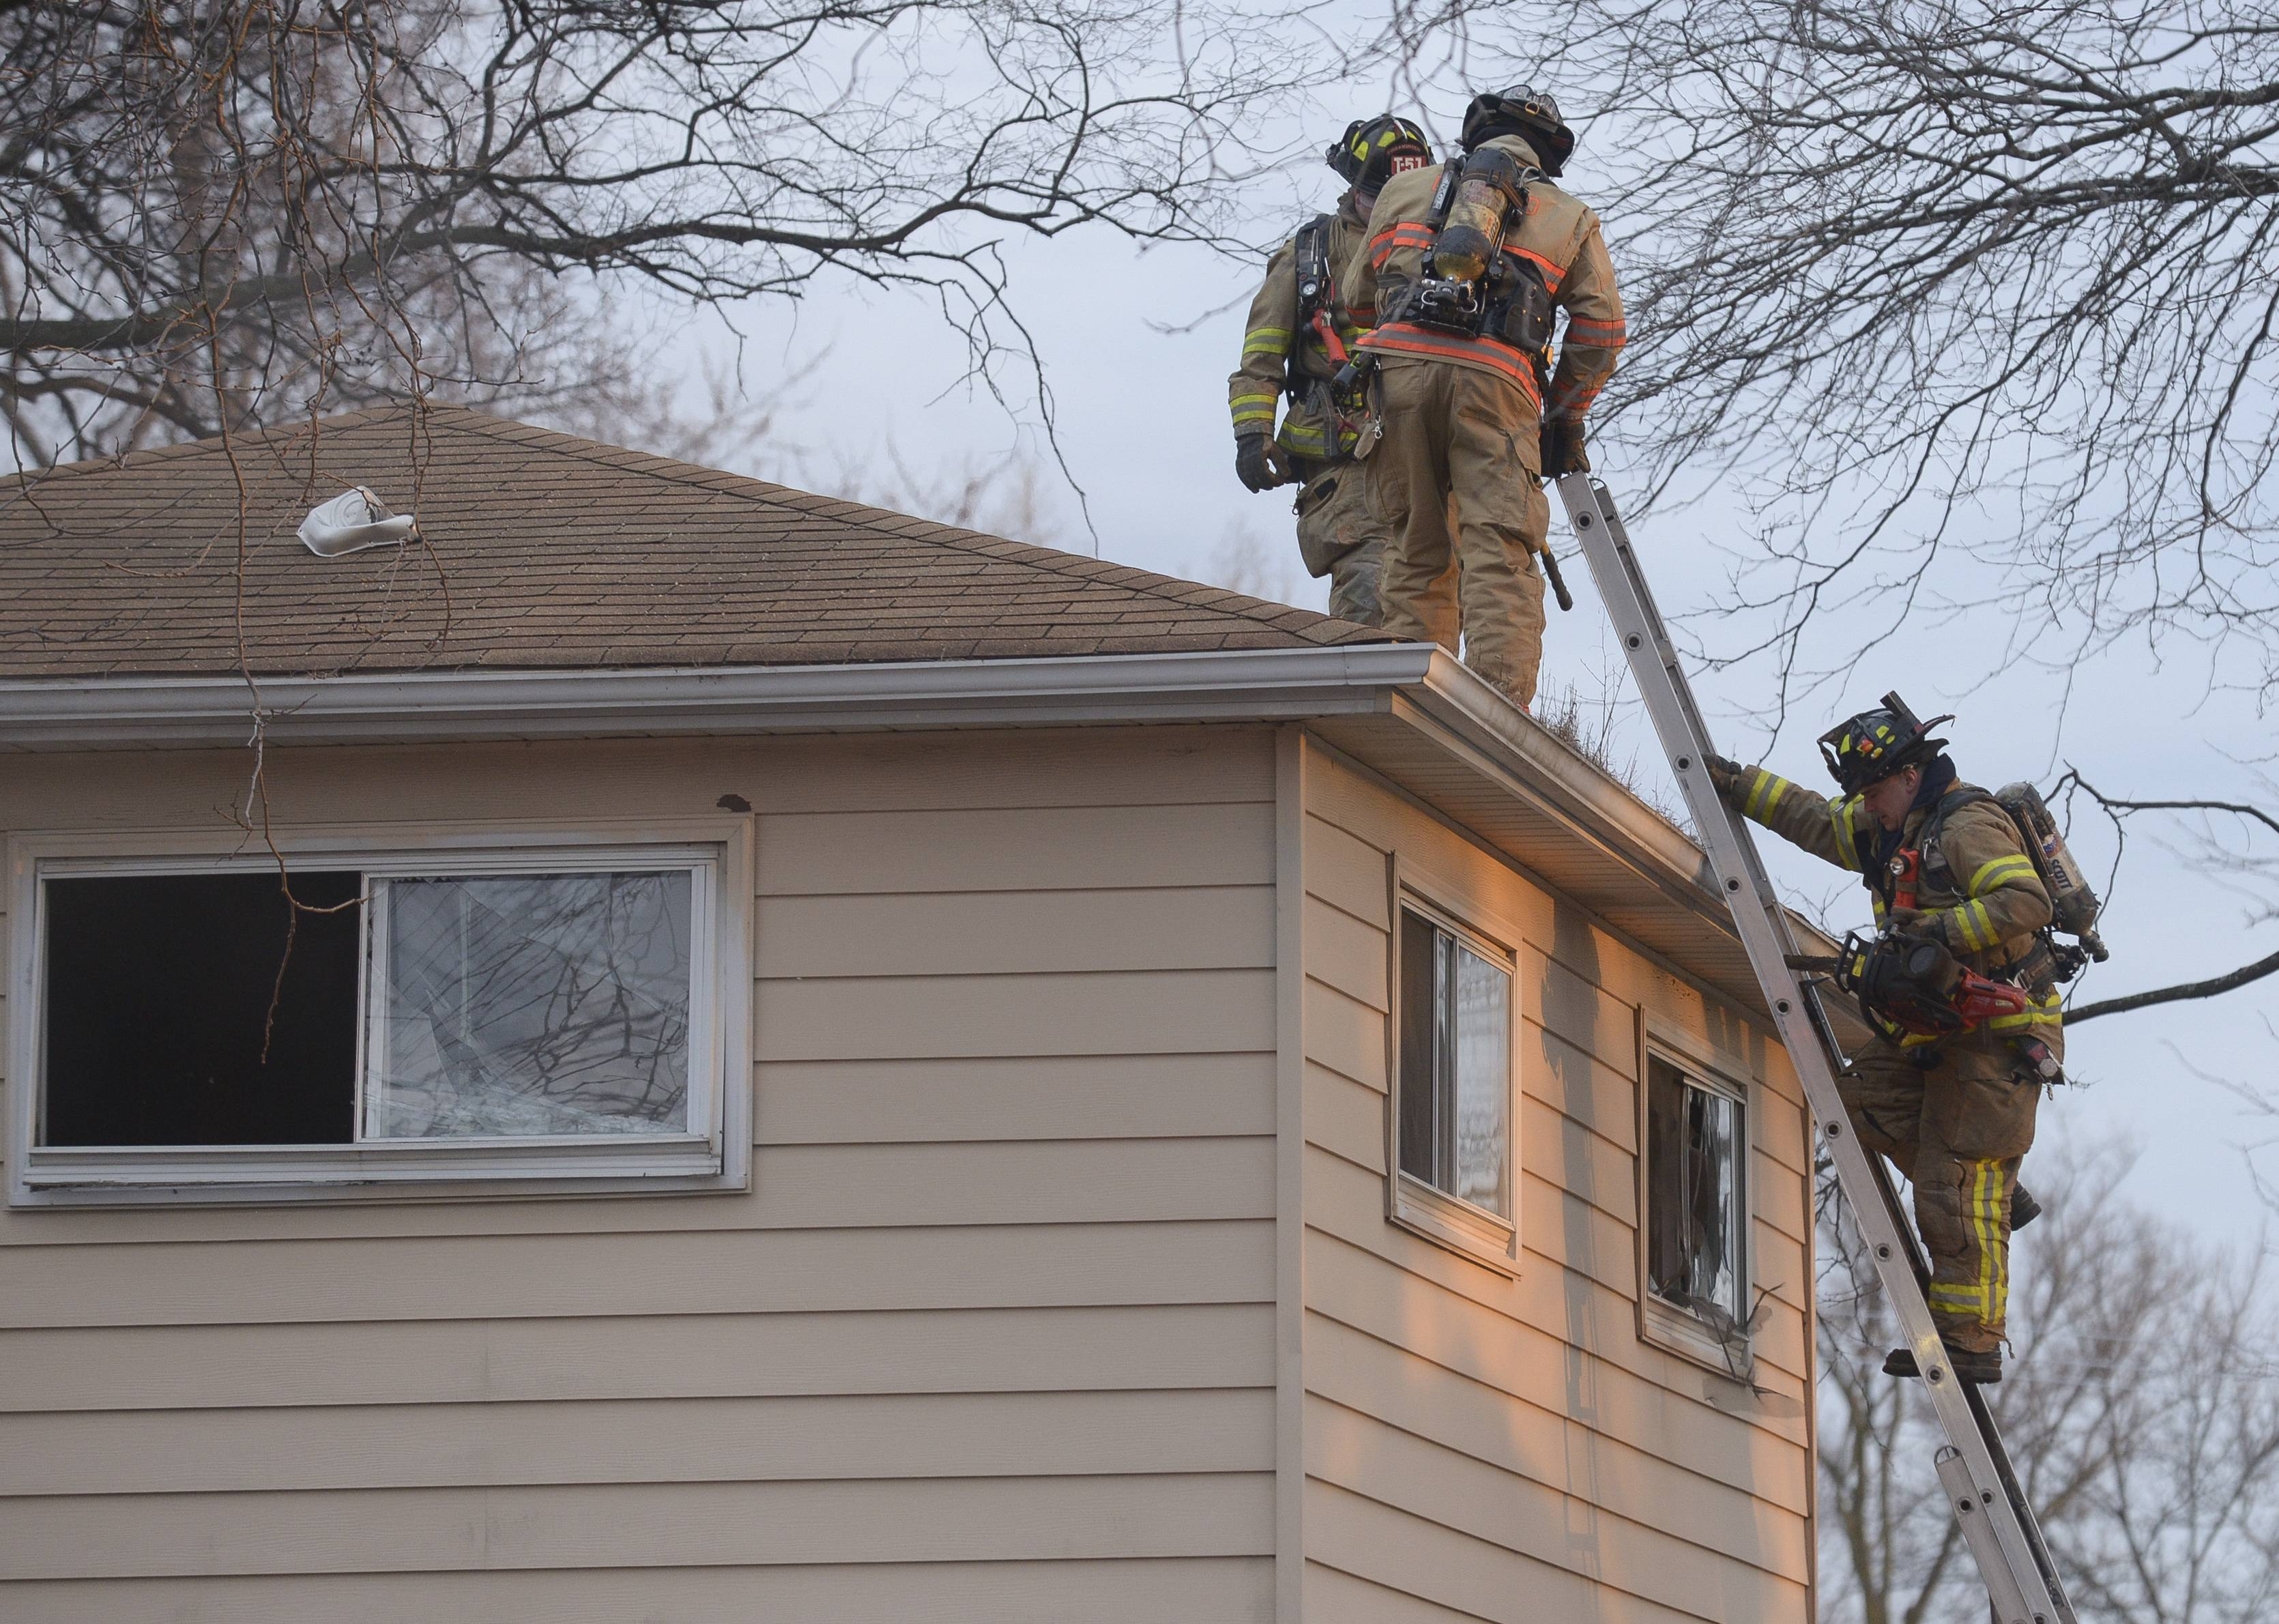 The Lombard fire department works the scene of a house fire in the 200 block of west Central Avenue in Lombard.